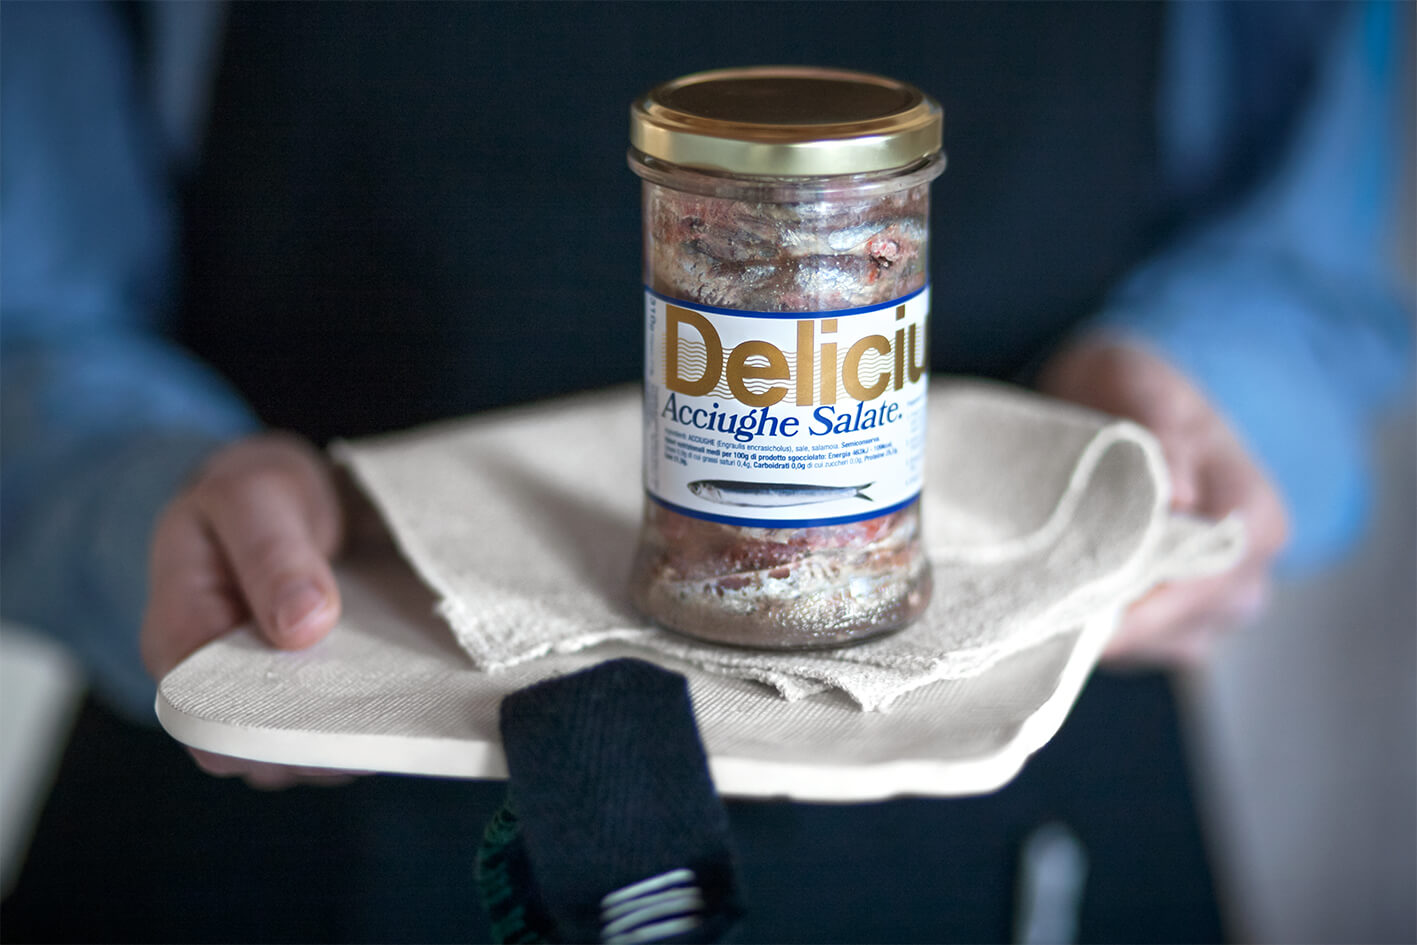 Salted Anchovies | Delicius